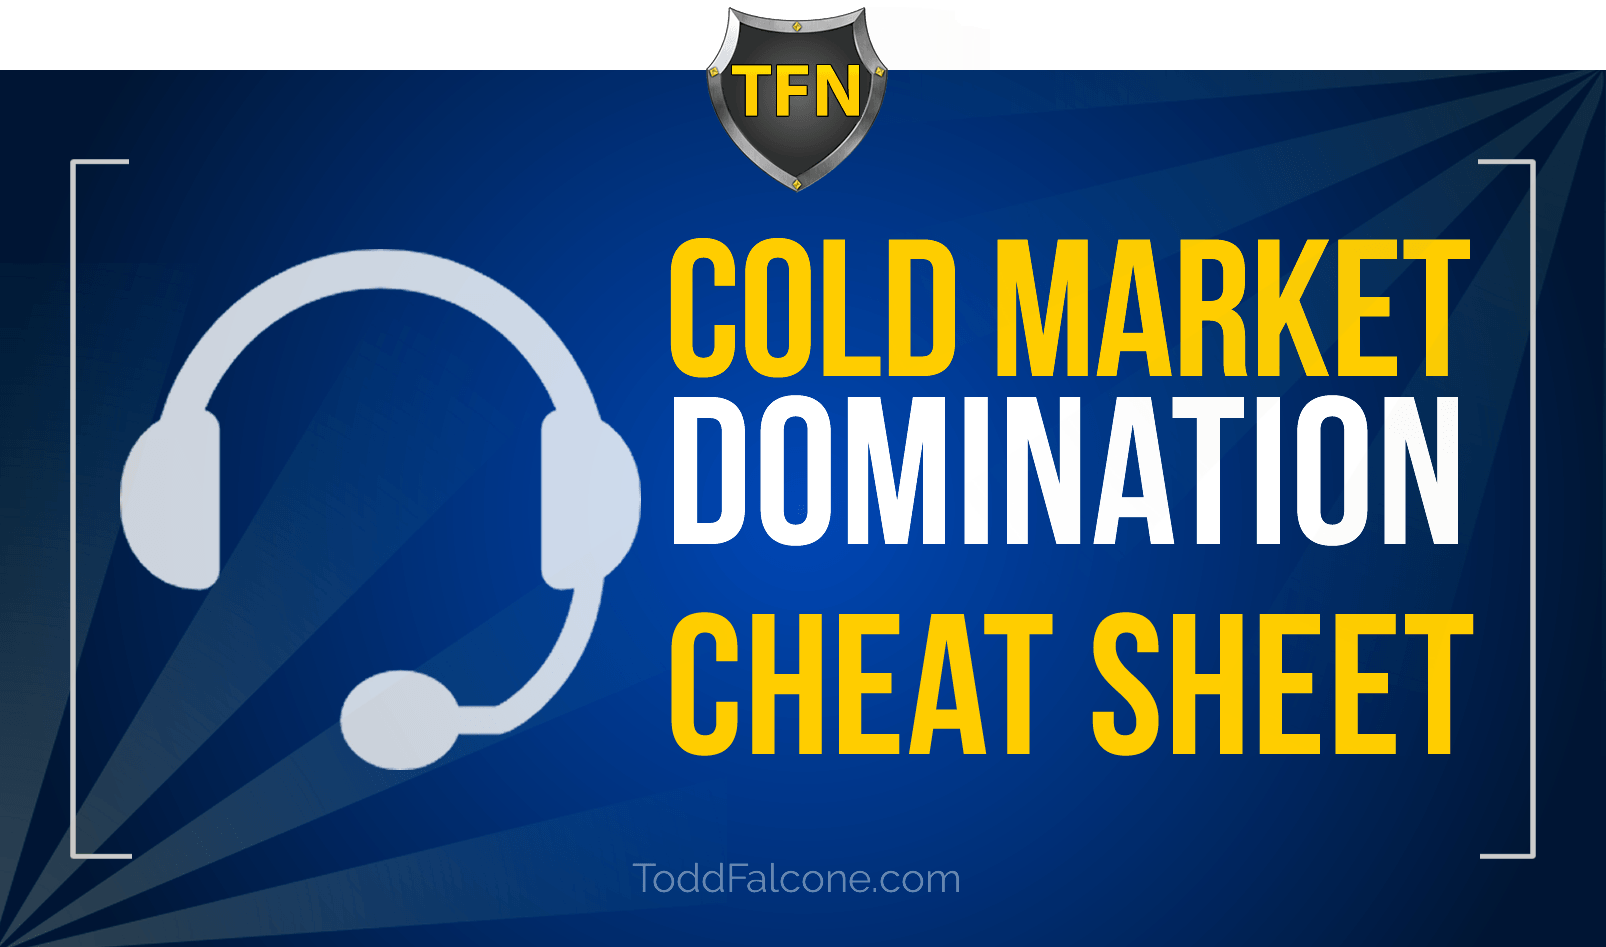 Cold Market Domination Cheat Sheet